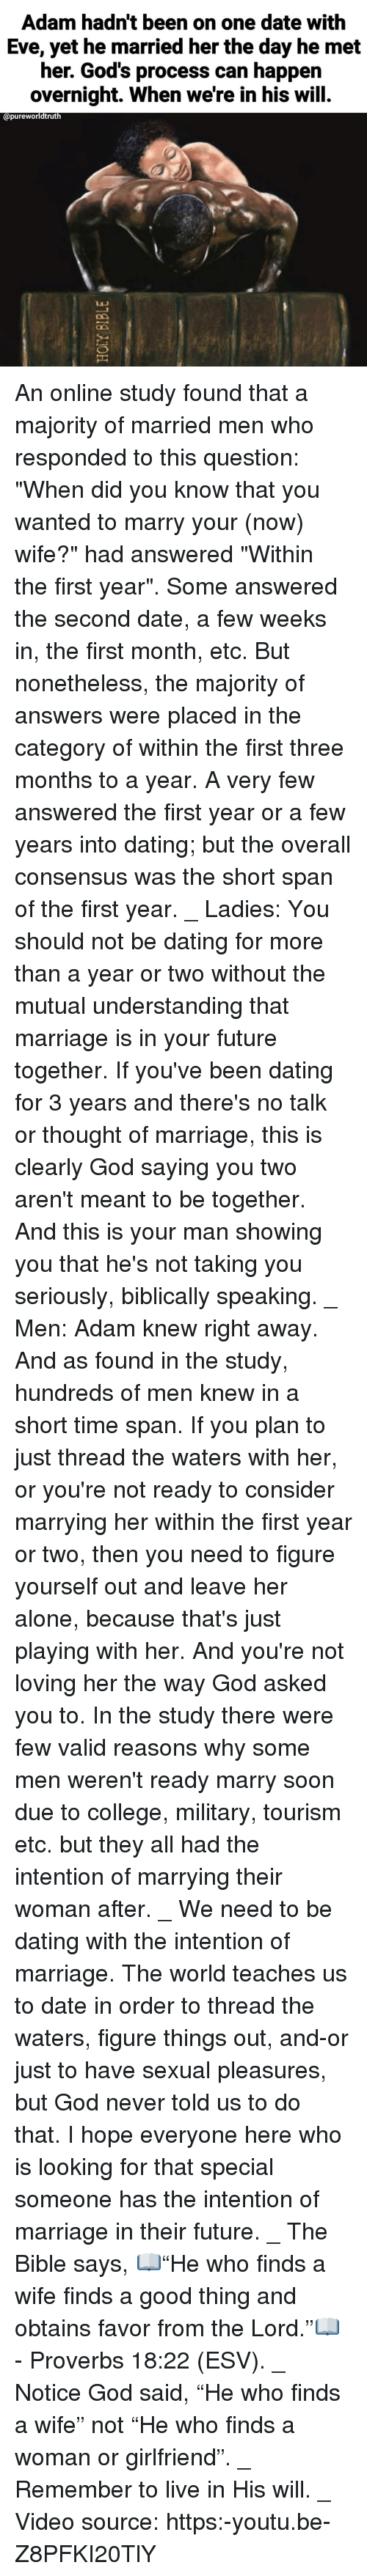 """Being Alone, College, and Dating: Adam hadn't been on one date with  Eve, yet he married her the day he met  her. God's process can happen  overnight. When we're in his will.  opureworldtruth  ไม่ An online study found that a majority of married men who responded to this question: """"When did you know that you wanted to marry your (now) wife?"""" had answered """"Within the first year"""". Some answered the second date, a few weeks in, the first month, etc. But nonetheless, the majority of answers were placed in the category of within the first three months to a year. A very few answered the first year or a few years into dating; but the overall consensus was the short span of the first year. _ Ladies: You should not be dating for more than a year or two without the mutual understanding that marriage is in your future together. If you've been dating for 3 years and there's no talk or thought of marriage, this is clearly God saying you two aren't meant to be together. And this is your man showing you that he's not taking you seriously, biblically speaking. _ Men: Adam knew right away. And as found in the study, hundreds of men knew in a short time span. If you plan to just thread the waters with her, or you're not ready to consider marrying her within the first year or two, then you need to figure yourself out and leave her alone, because that's just playing with her. And you're not loving her the way God asked you to. In the study there were few valid reasons why some men weren't ready marry soon due to college, military, tourism etc. but they all had the intention of marrying their woman after. _ We need to be dating with the intention of marriage. The world teaches us to date in order to thread the waters, figure things out, and-or just to have sexual pleasures, but God never told us to do that. I hope everyone here who is looking for that special someone has the intention of marriage in their future. _ The Bible says, 📖""""He who finds a wife finds a good thing and obtains fav"""